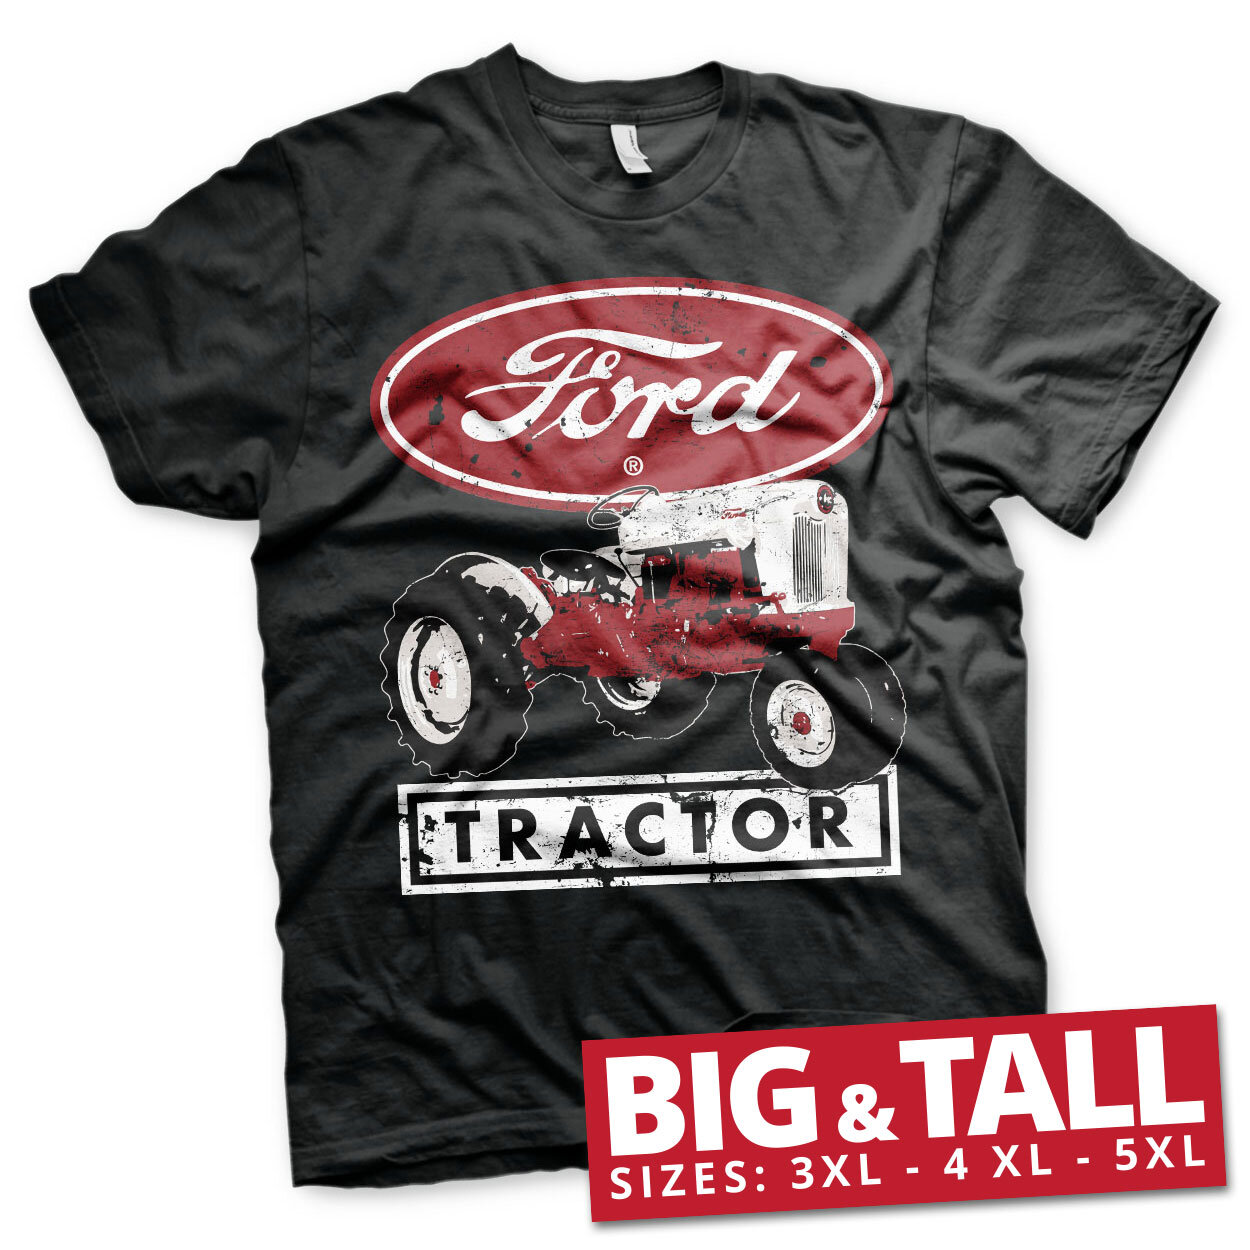 Ford Tractor Big & Tall T-Shirt